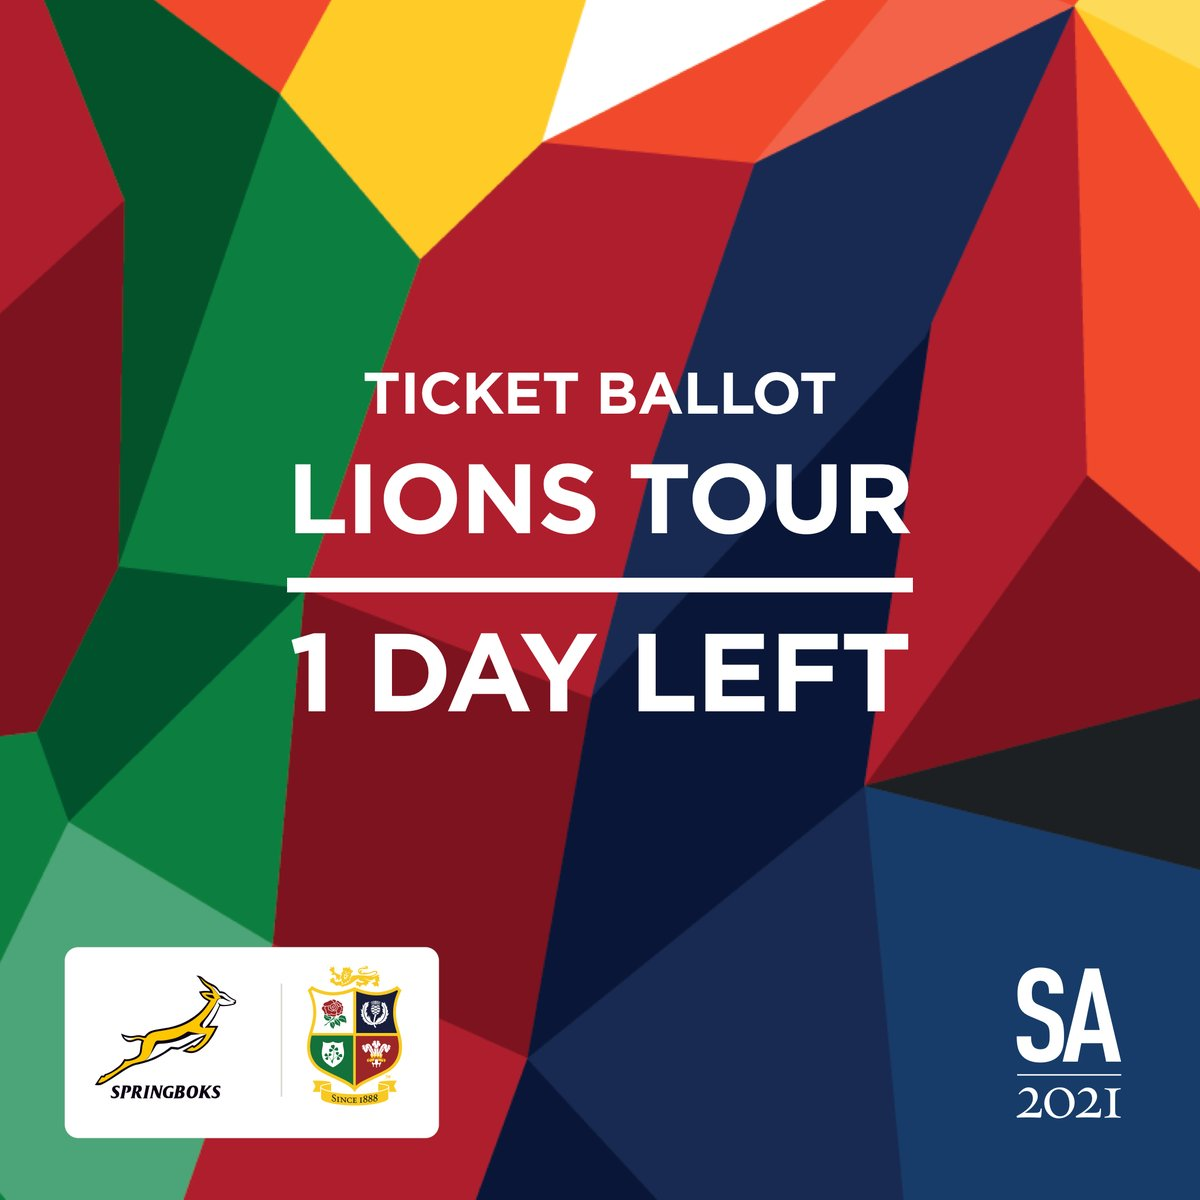 🚨 Don't miss out!  The ticket ballot for the British & Irish Lions Tour to #SA2021 closes tomorrow (Wednesday, 16 September) at 23:59 CAT.  Don't miss out on this spectacular event!  Ticket ballot: https://t.co/Aio7yCA40y More info: https://t.co/OUw5W2xDmw https://t.co/7Kx6bDpOuG